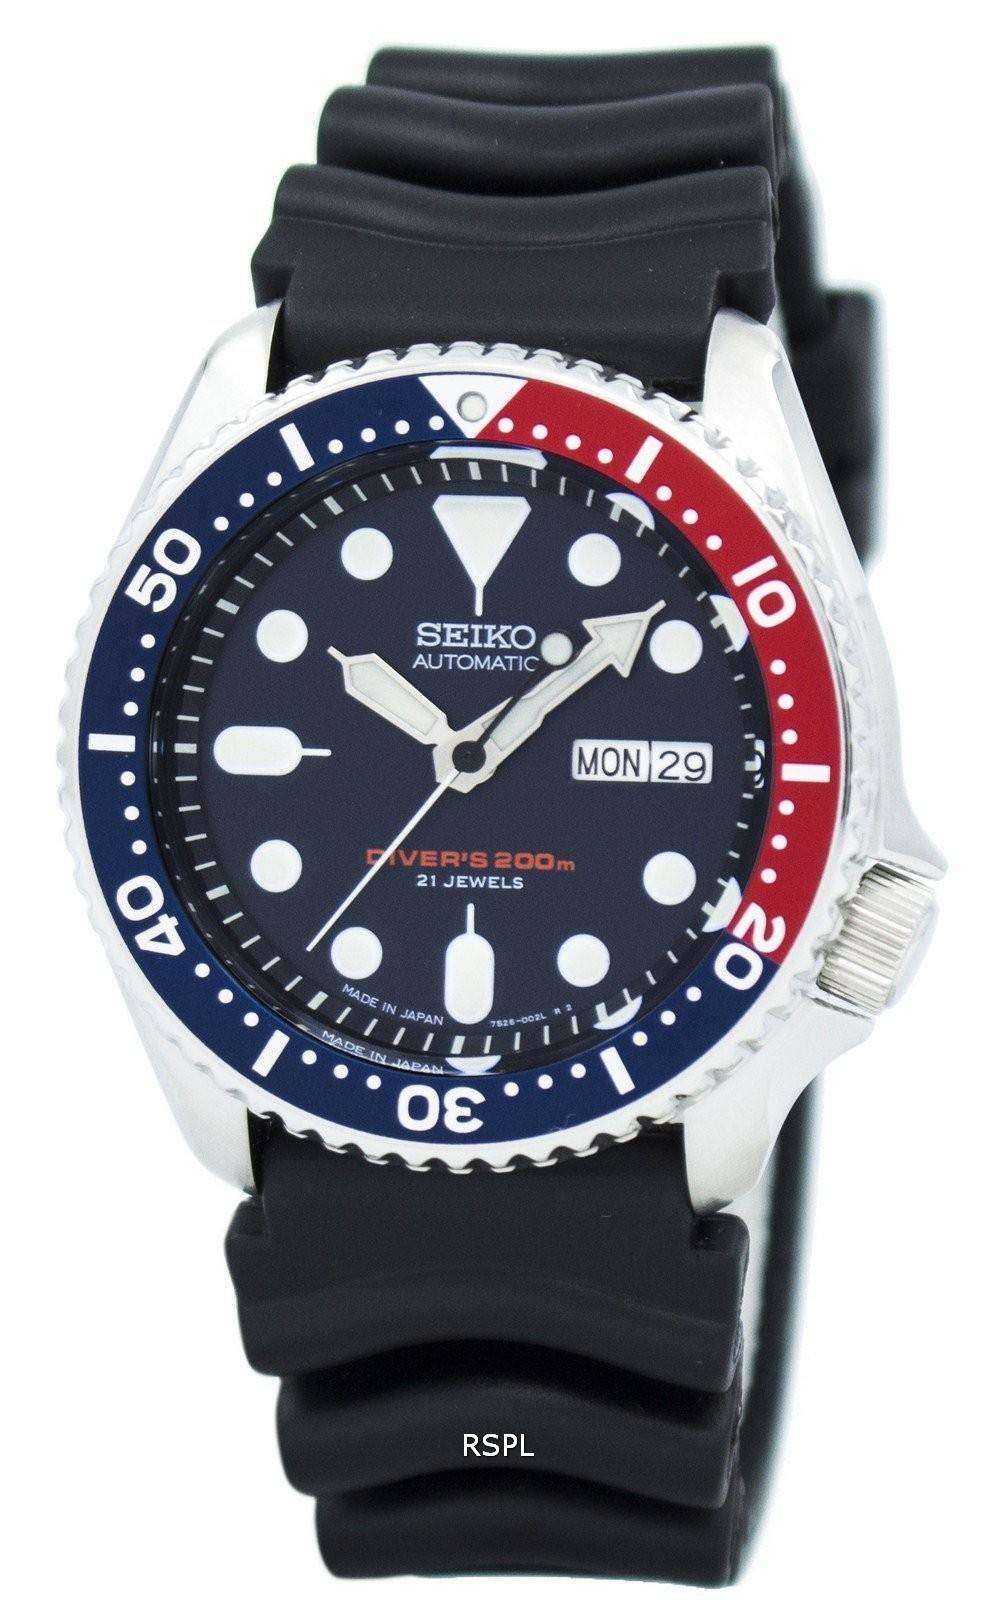 Seiko automatic divers 200m skx009j1 made in japan watch downunderwatches for Watches japan